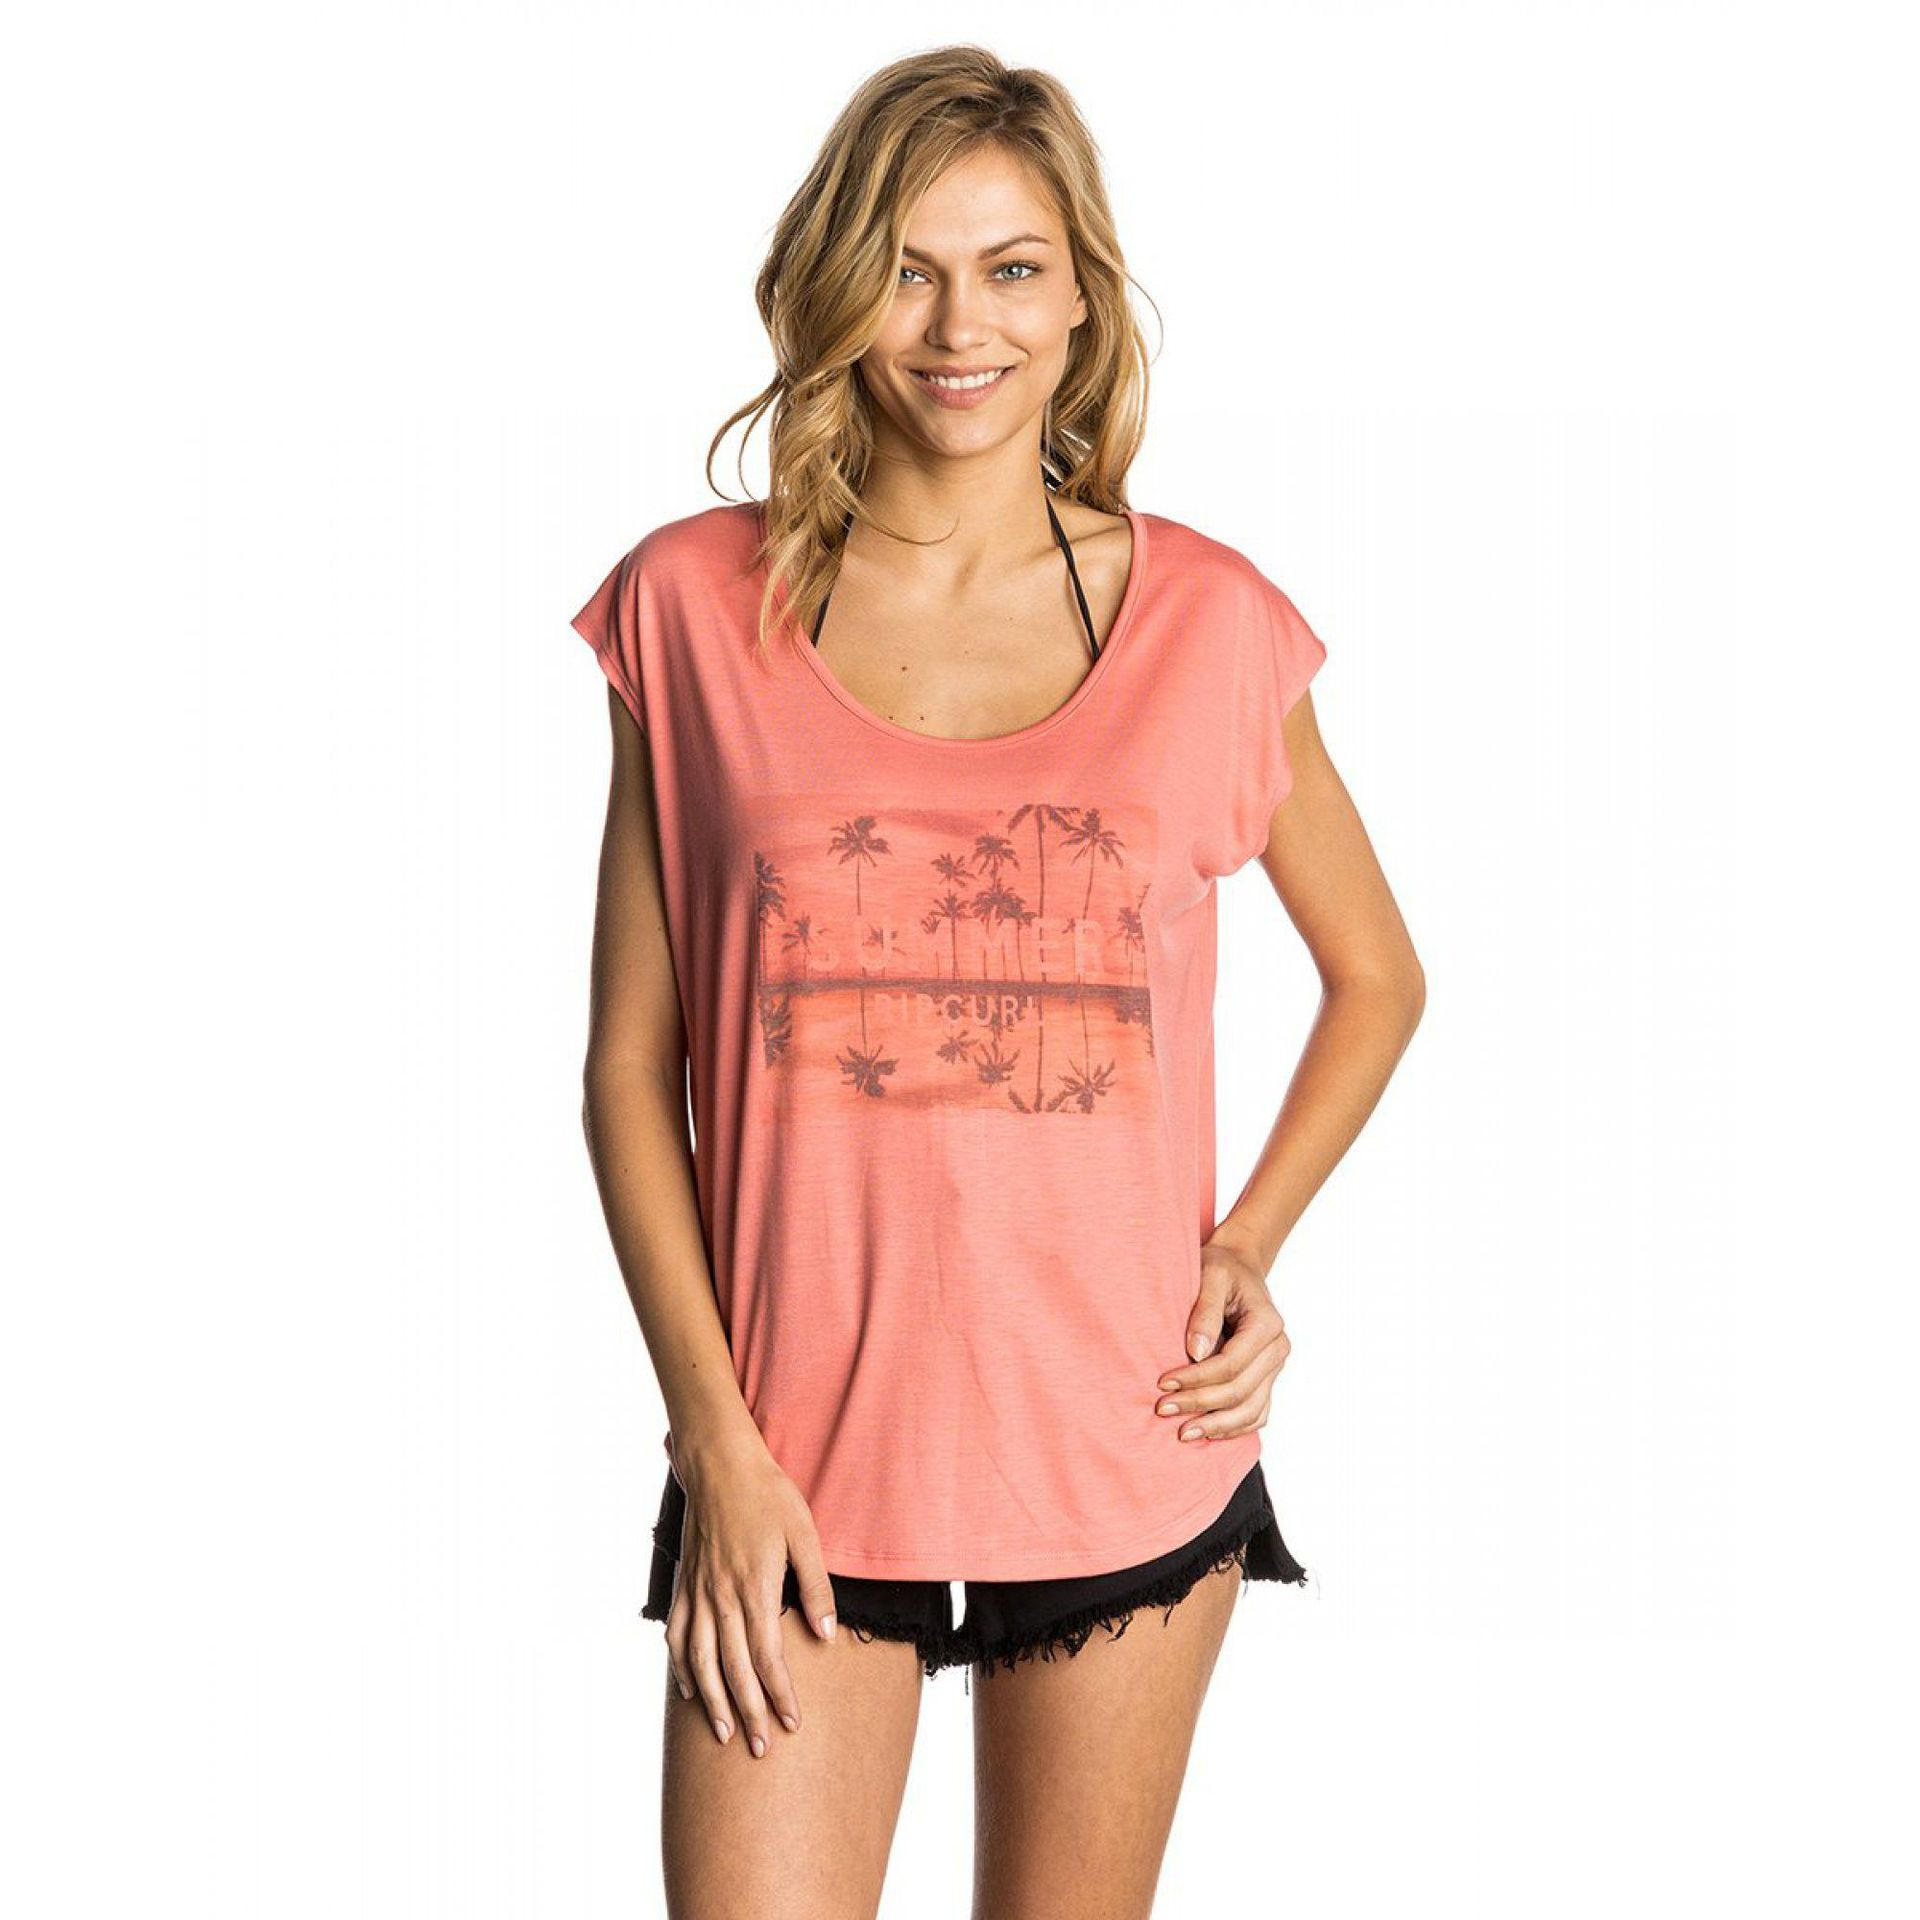 T-SHIRT RIP CURL ENDLESS SUMMER 4403 SUNKIST CORAL 1